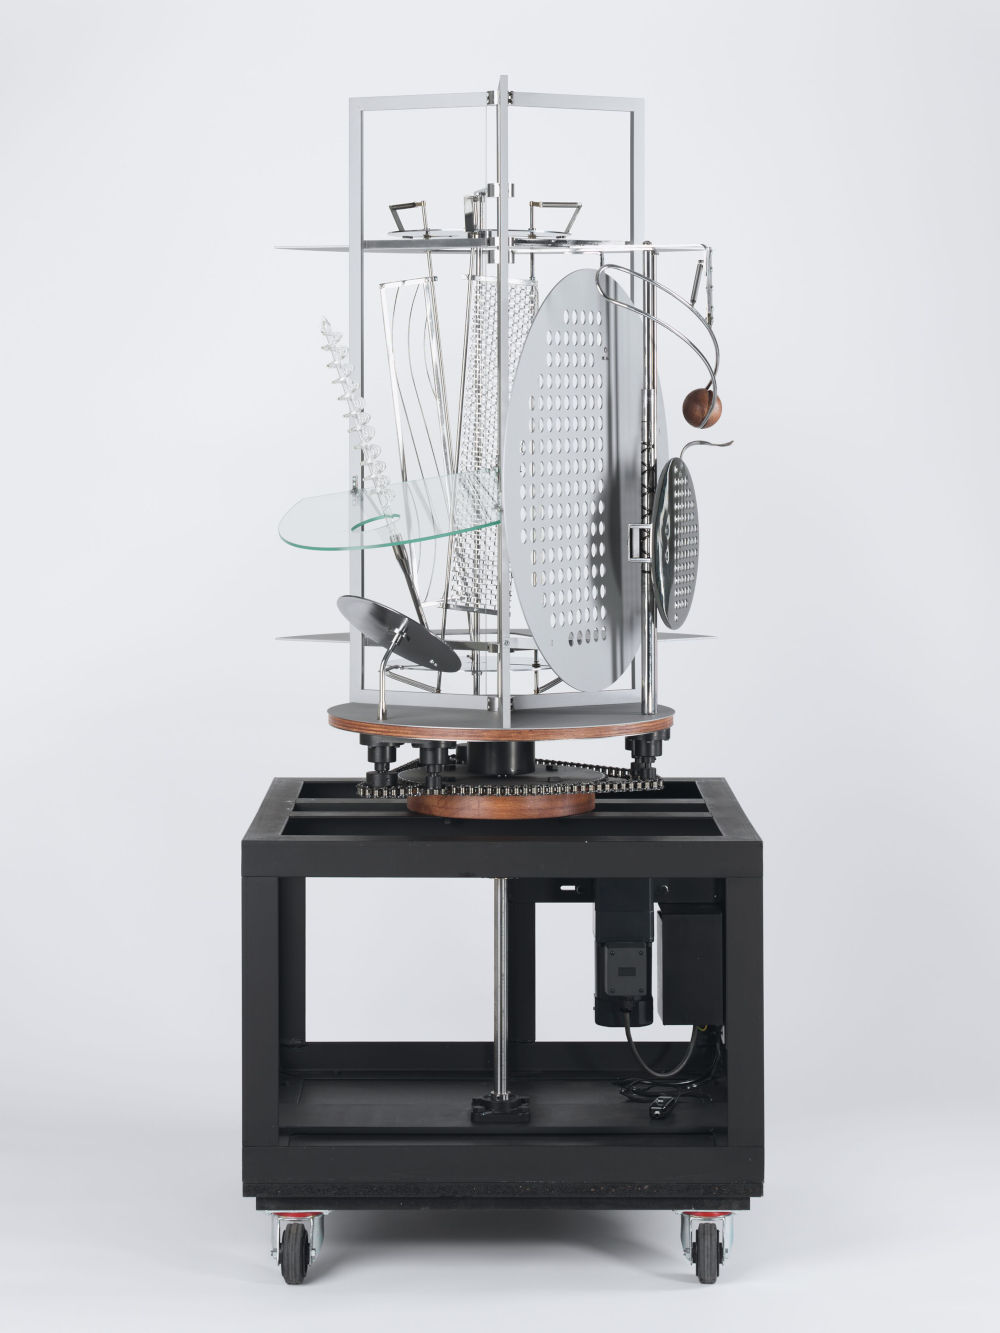 László Moholy-Nagy, Light Prop for an Electric Stage, 1930. Metal, plastics, glass, paint, and wood, with electric motor. Exhibition replica constructed in 2006 151 x 70 x 70 cm / 59 1/2 x 27 1/2 x 27 1/2 in © the Estate of László Moholy-Nagy / Artists Rights Society (ARS), New York / VG Bild-Kunst, Bonn. Courtesy of the Estate of László Moholy-Nagy